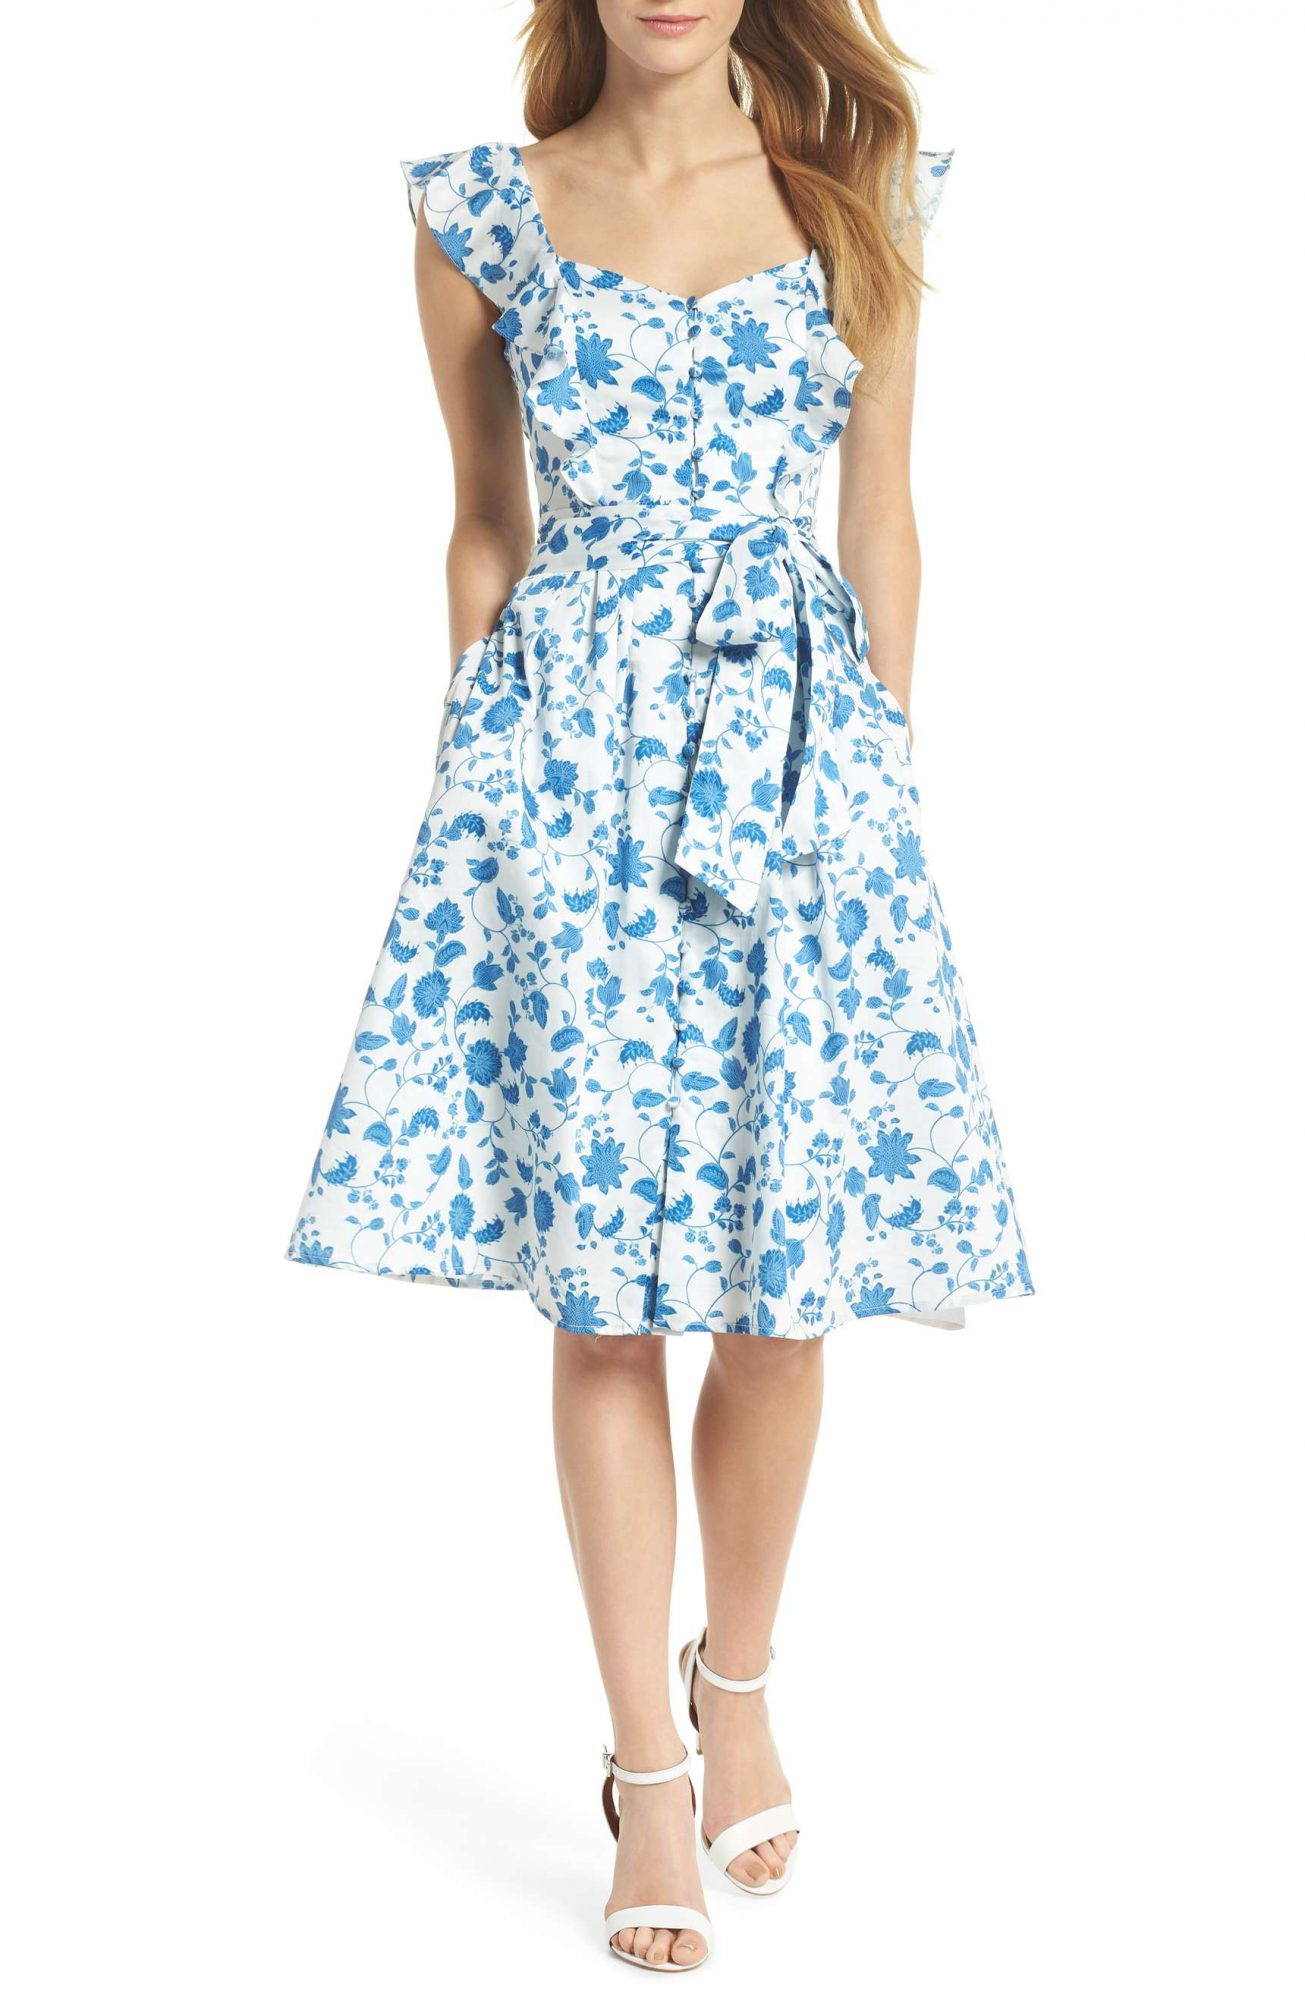 Gal Meets Glam Blogger's Second Nordstrom Collab Has Even Prettier Dresses than the First girl-meets-glam-nordstorm-floral